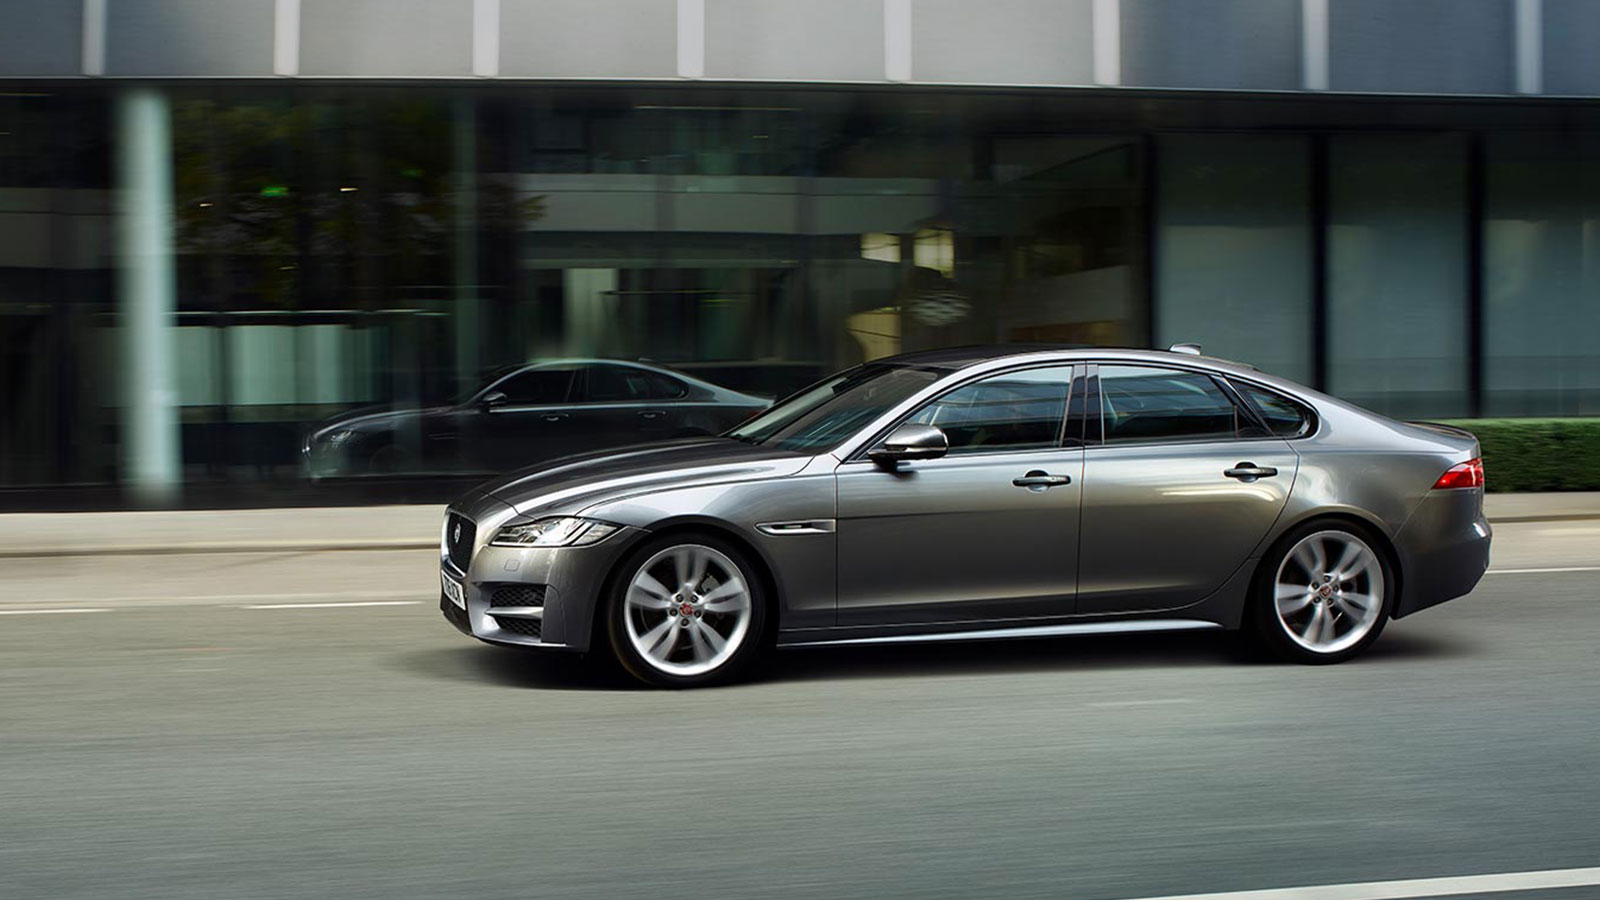 Jaguar XF Driving In City side View.